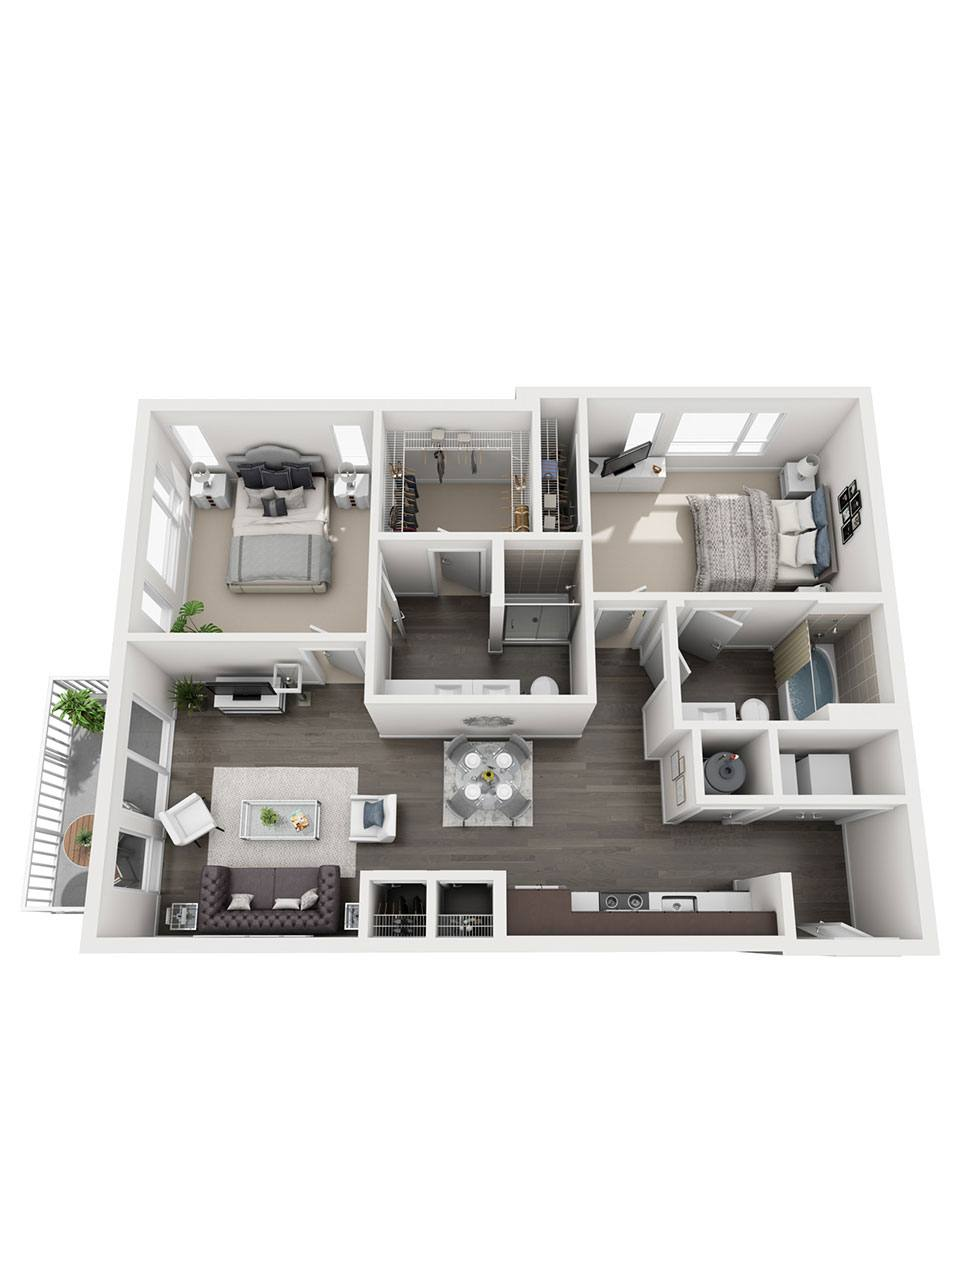 Plan 2 Bedroom – B8 | 2 Bath